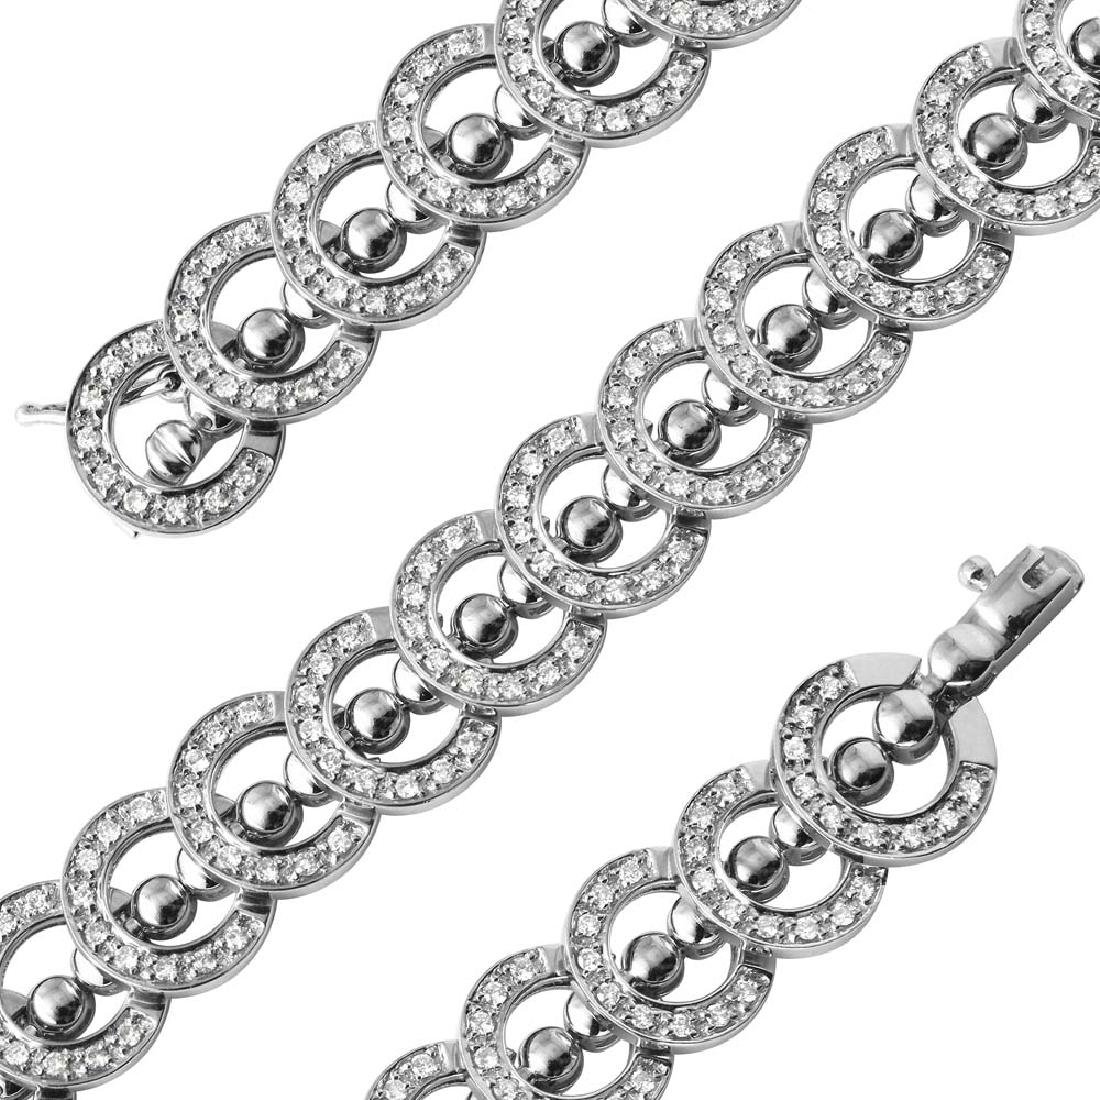 Genuine 1.67 TCW 18K White Gold Ladies Bracelet